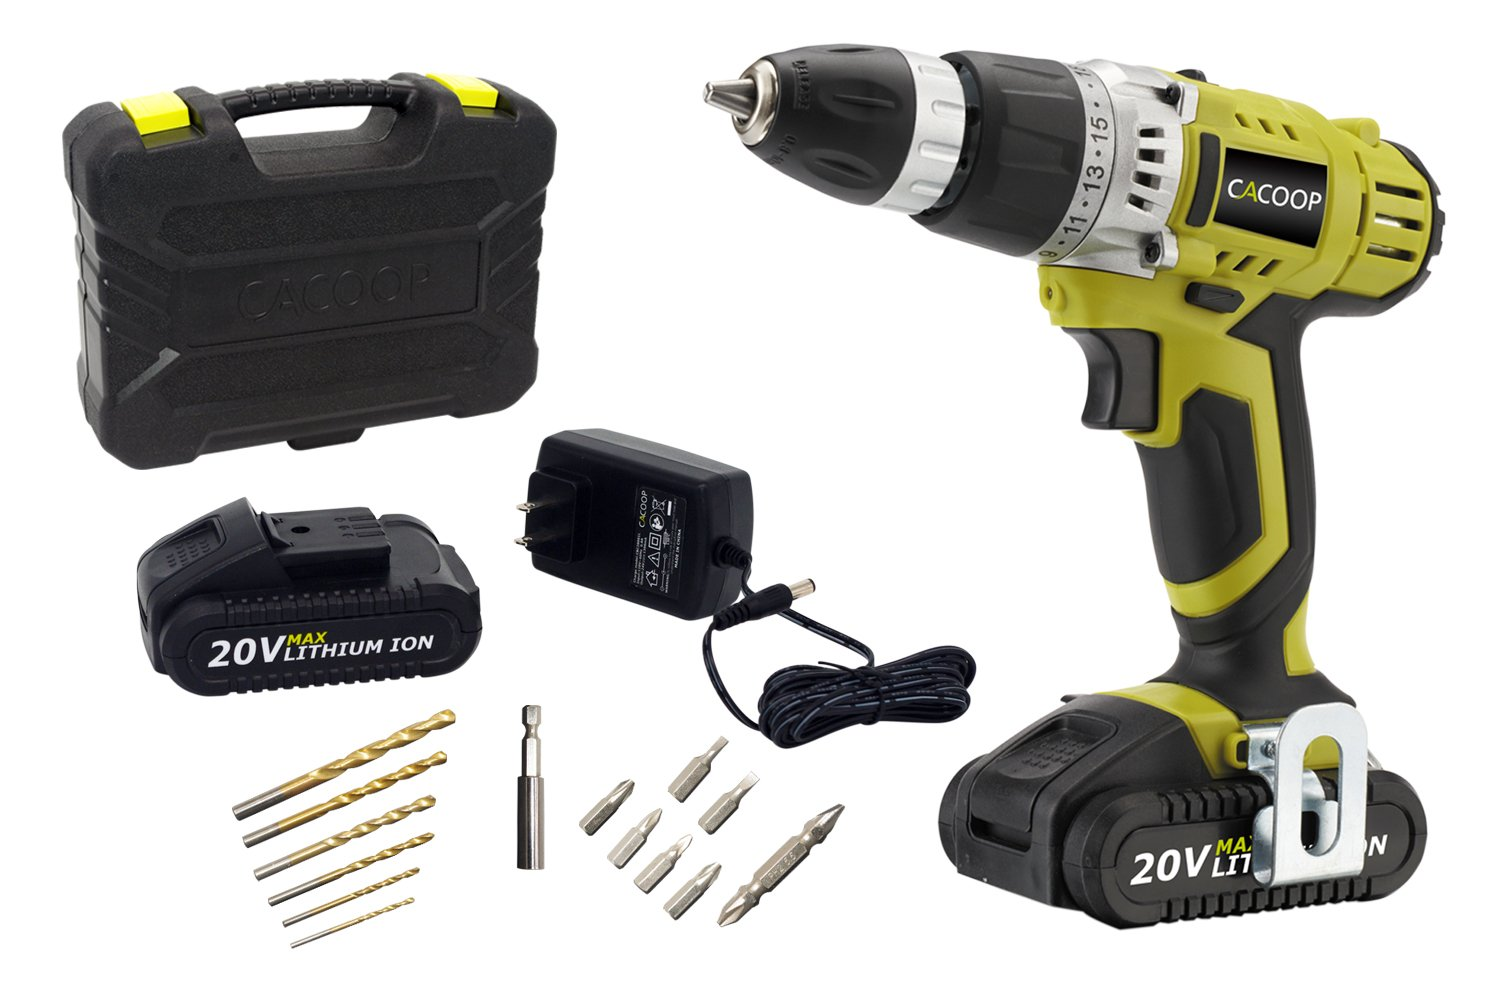 CACOOP CCD20001L 20-Volt MAX Lithium-Ion Cordless Drill/Driver (DRILL WITH TWO BATTERY PACKS)